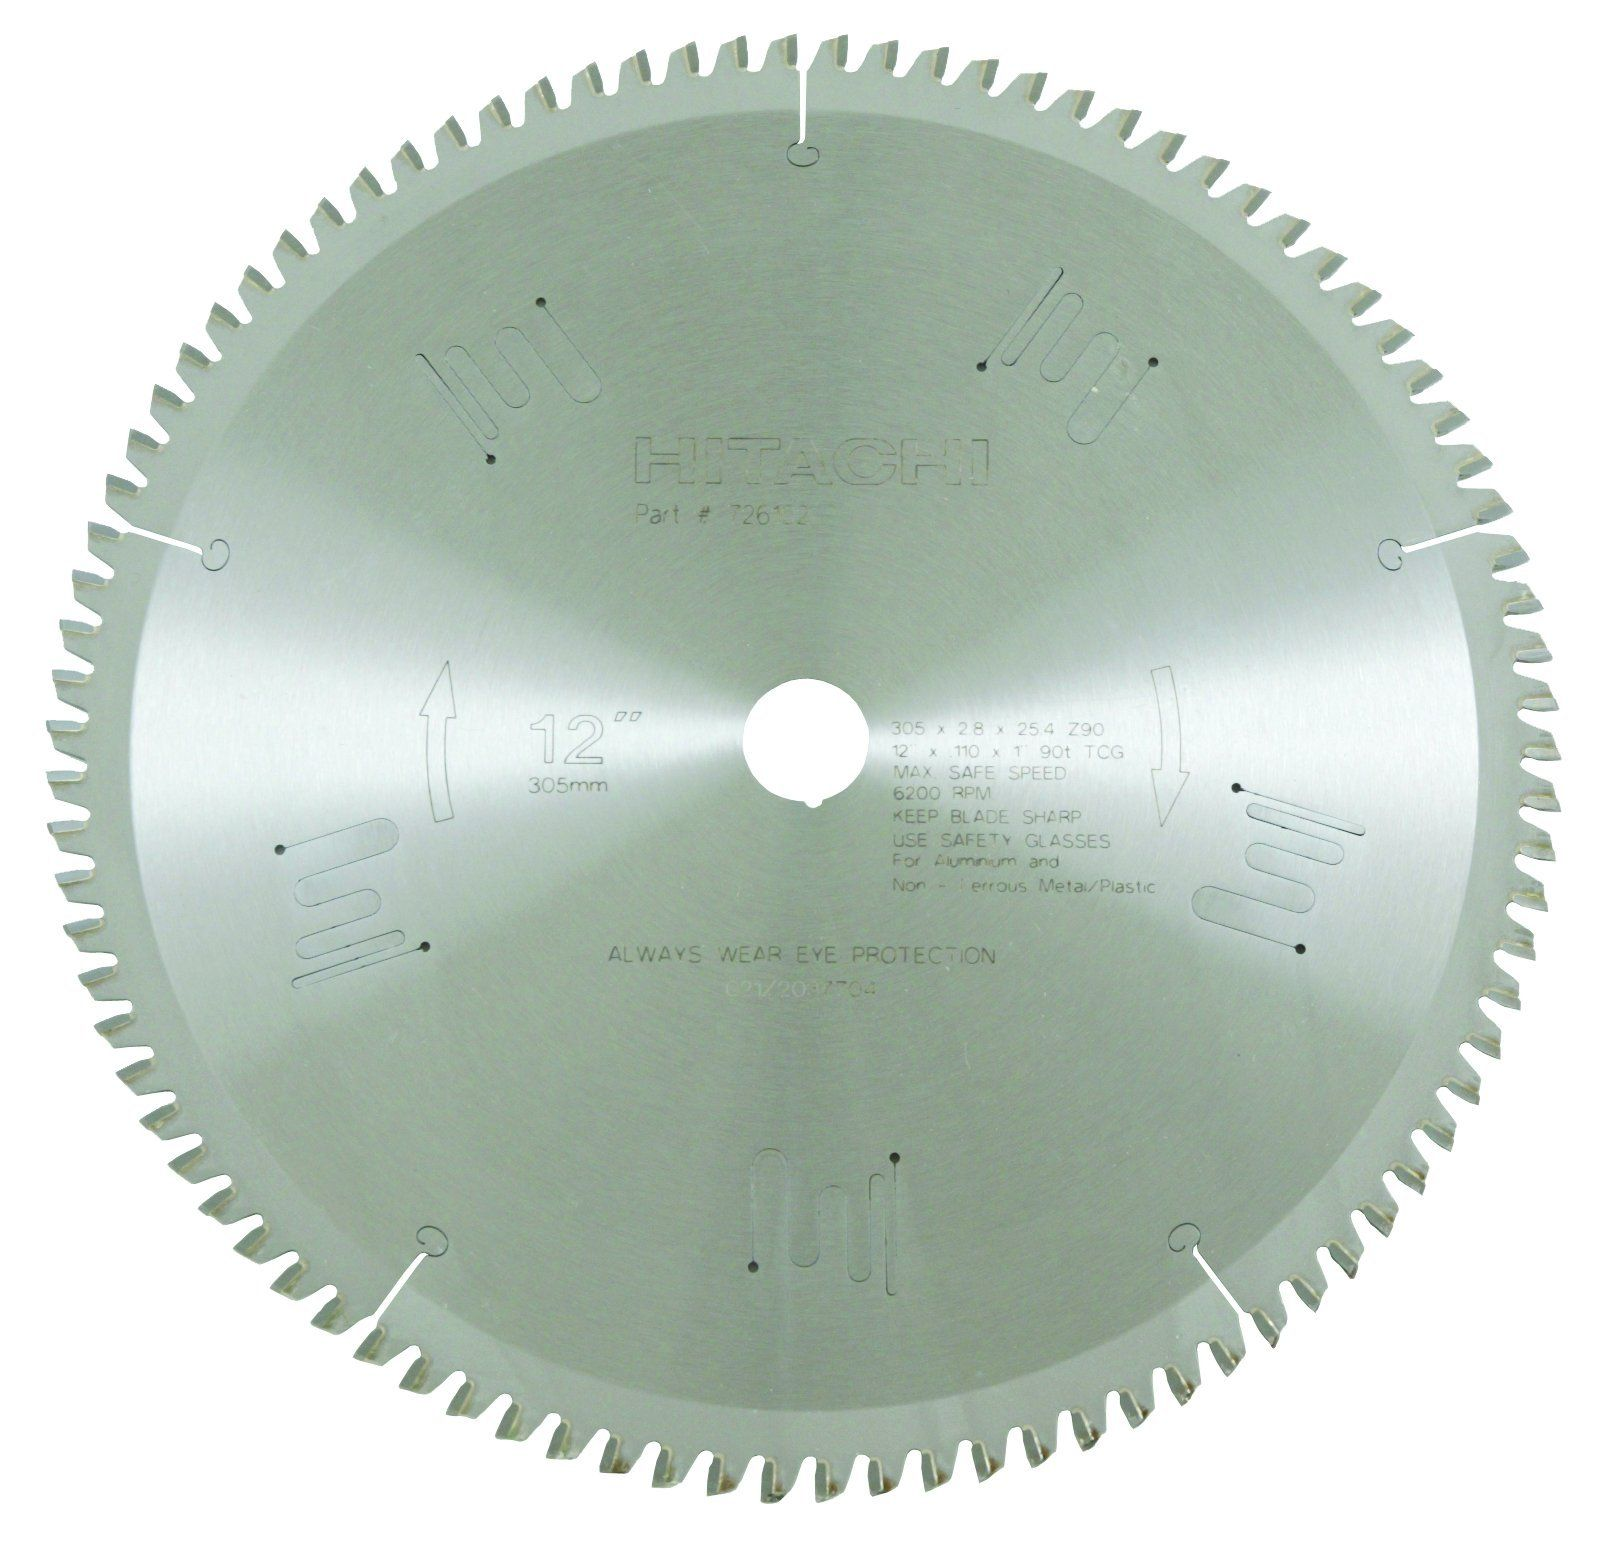 Hitachi 726102 90teeth Tungsten Carbide Tipped 12inch Tcg 1inch Arbor Finish Saw Blade Look Into This Fantastic It With Images Circular Saw Blades Saw Blade Circular Saw